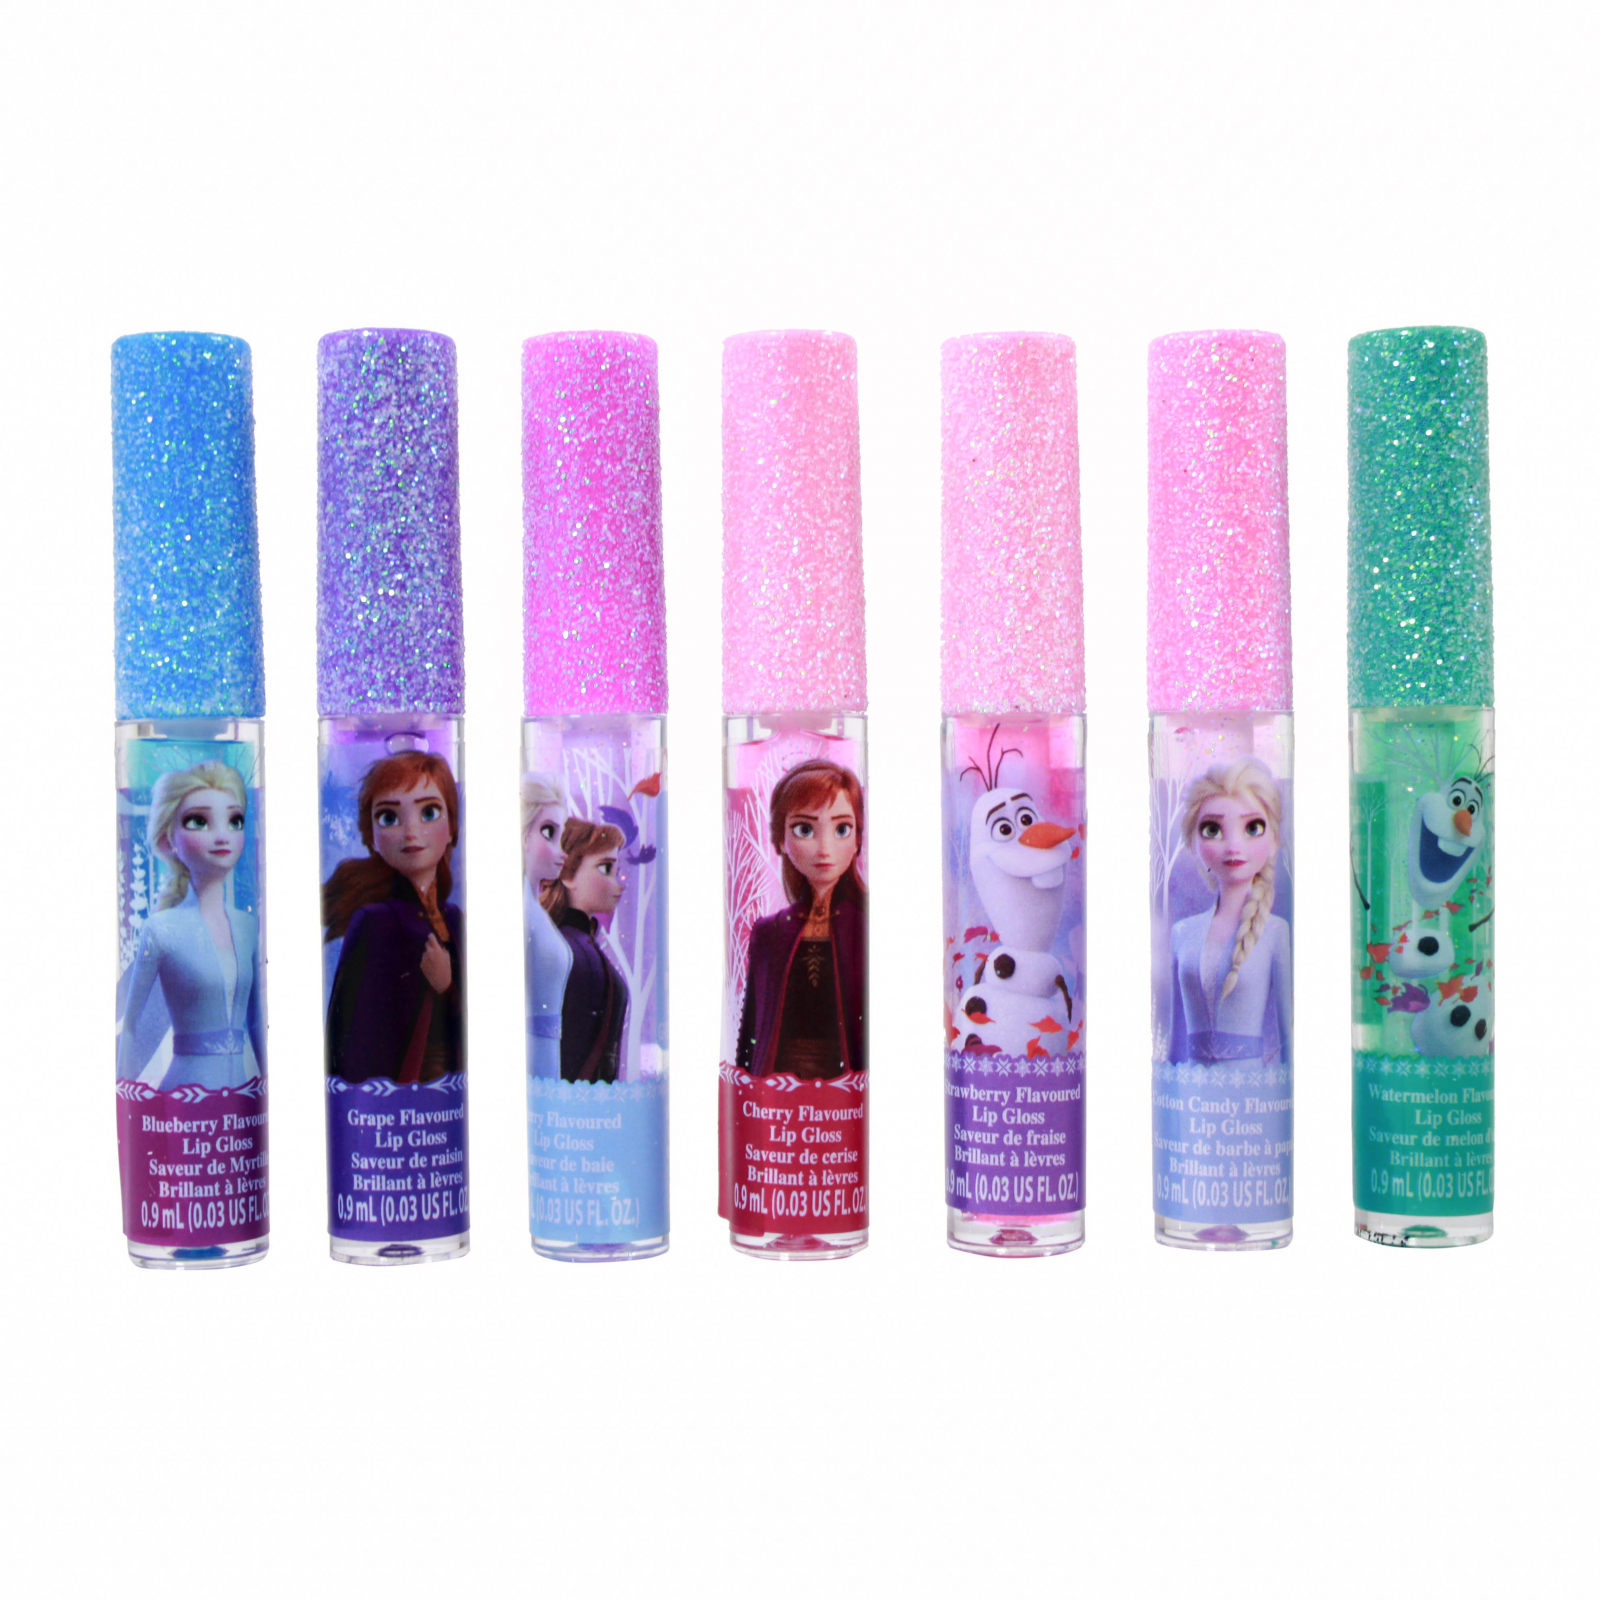 Disney Frozen 2 Girls Flavored Lip Gloss Gift Set 7 Pieces